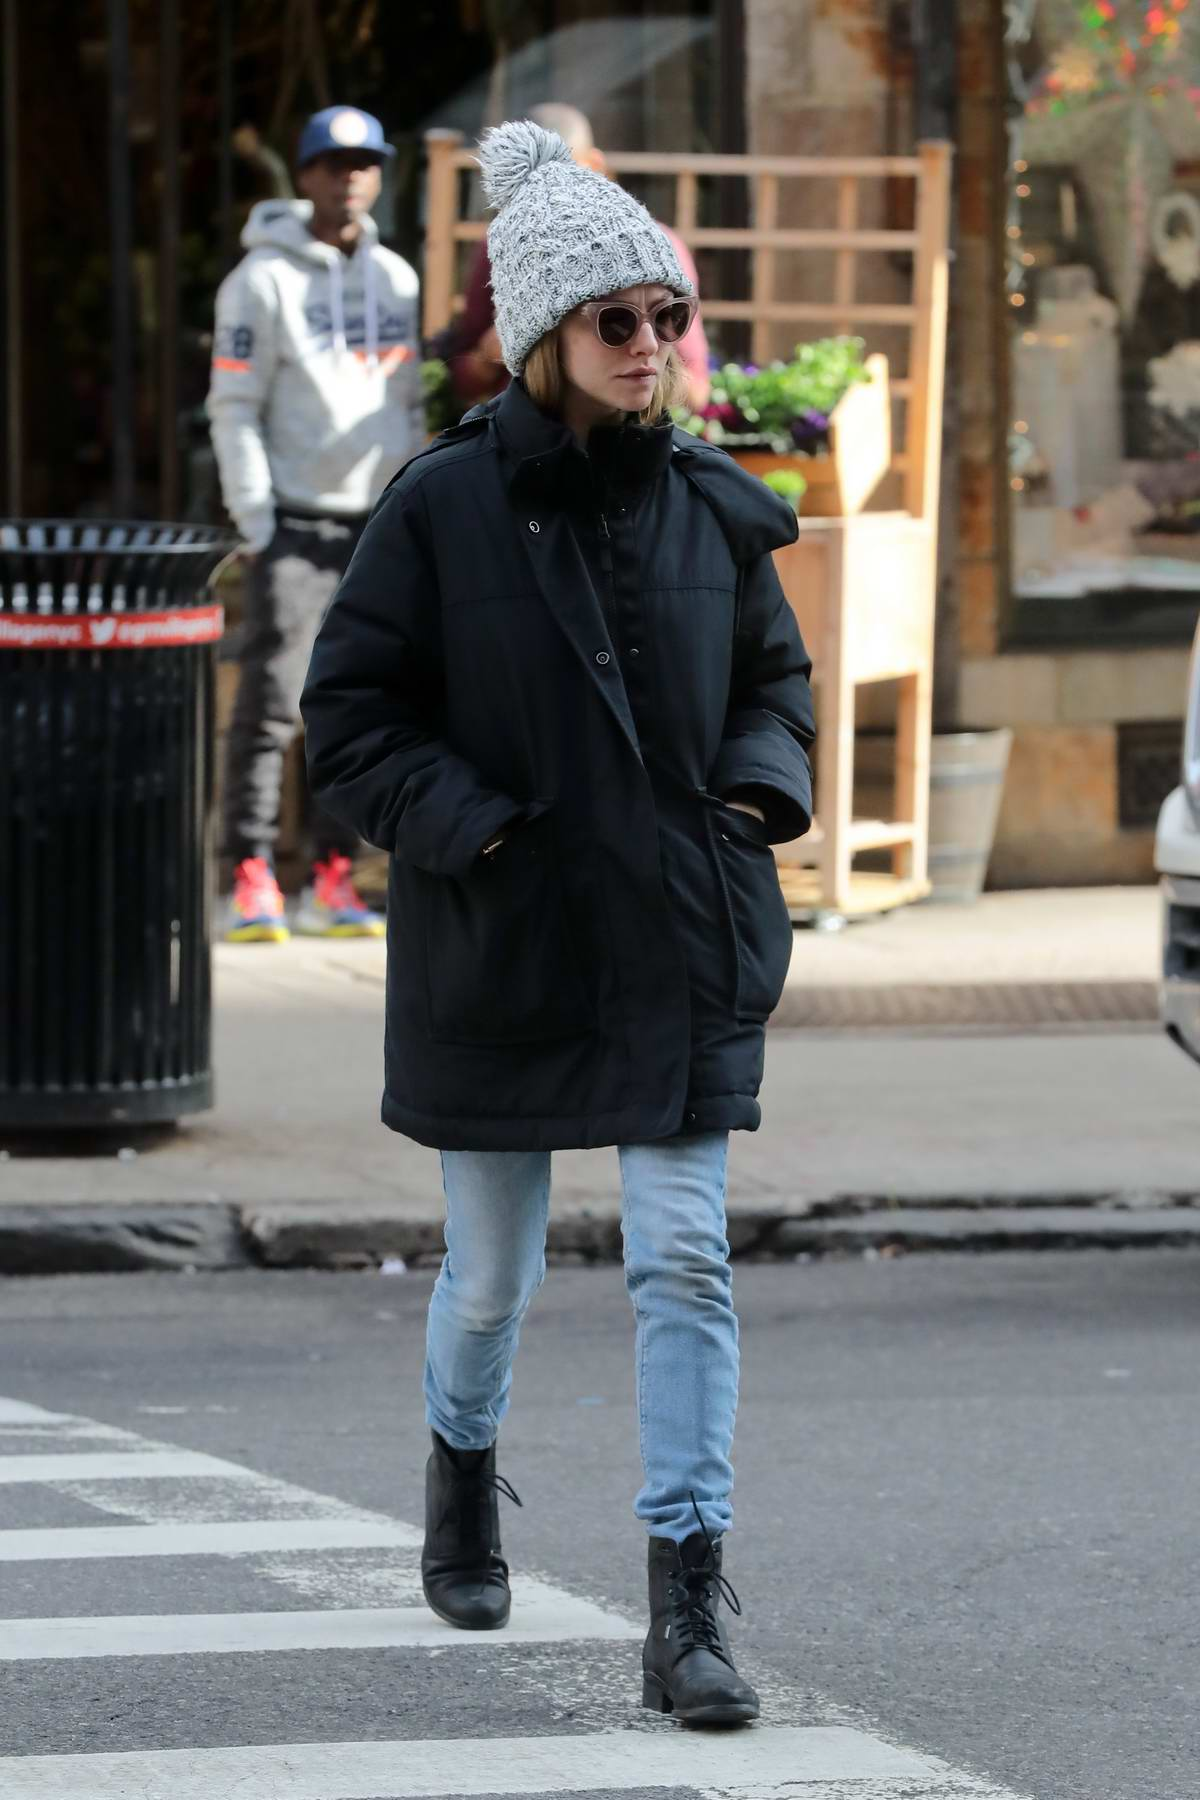 Amanda Seyfried keeps warm in a knit beanie and a black jacket while out in New York City